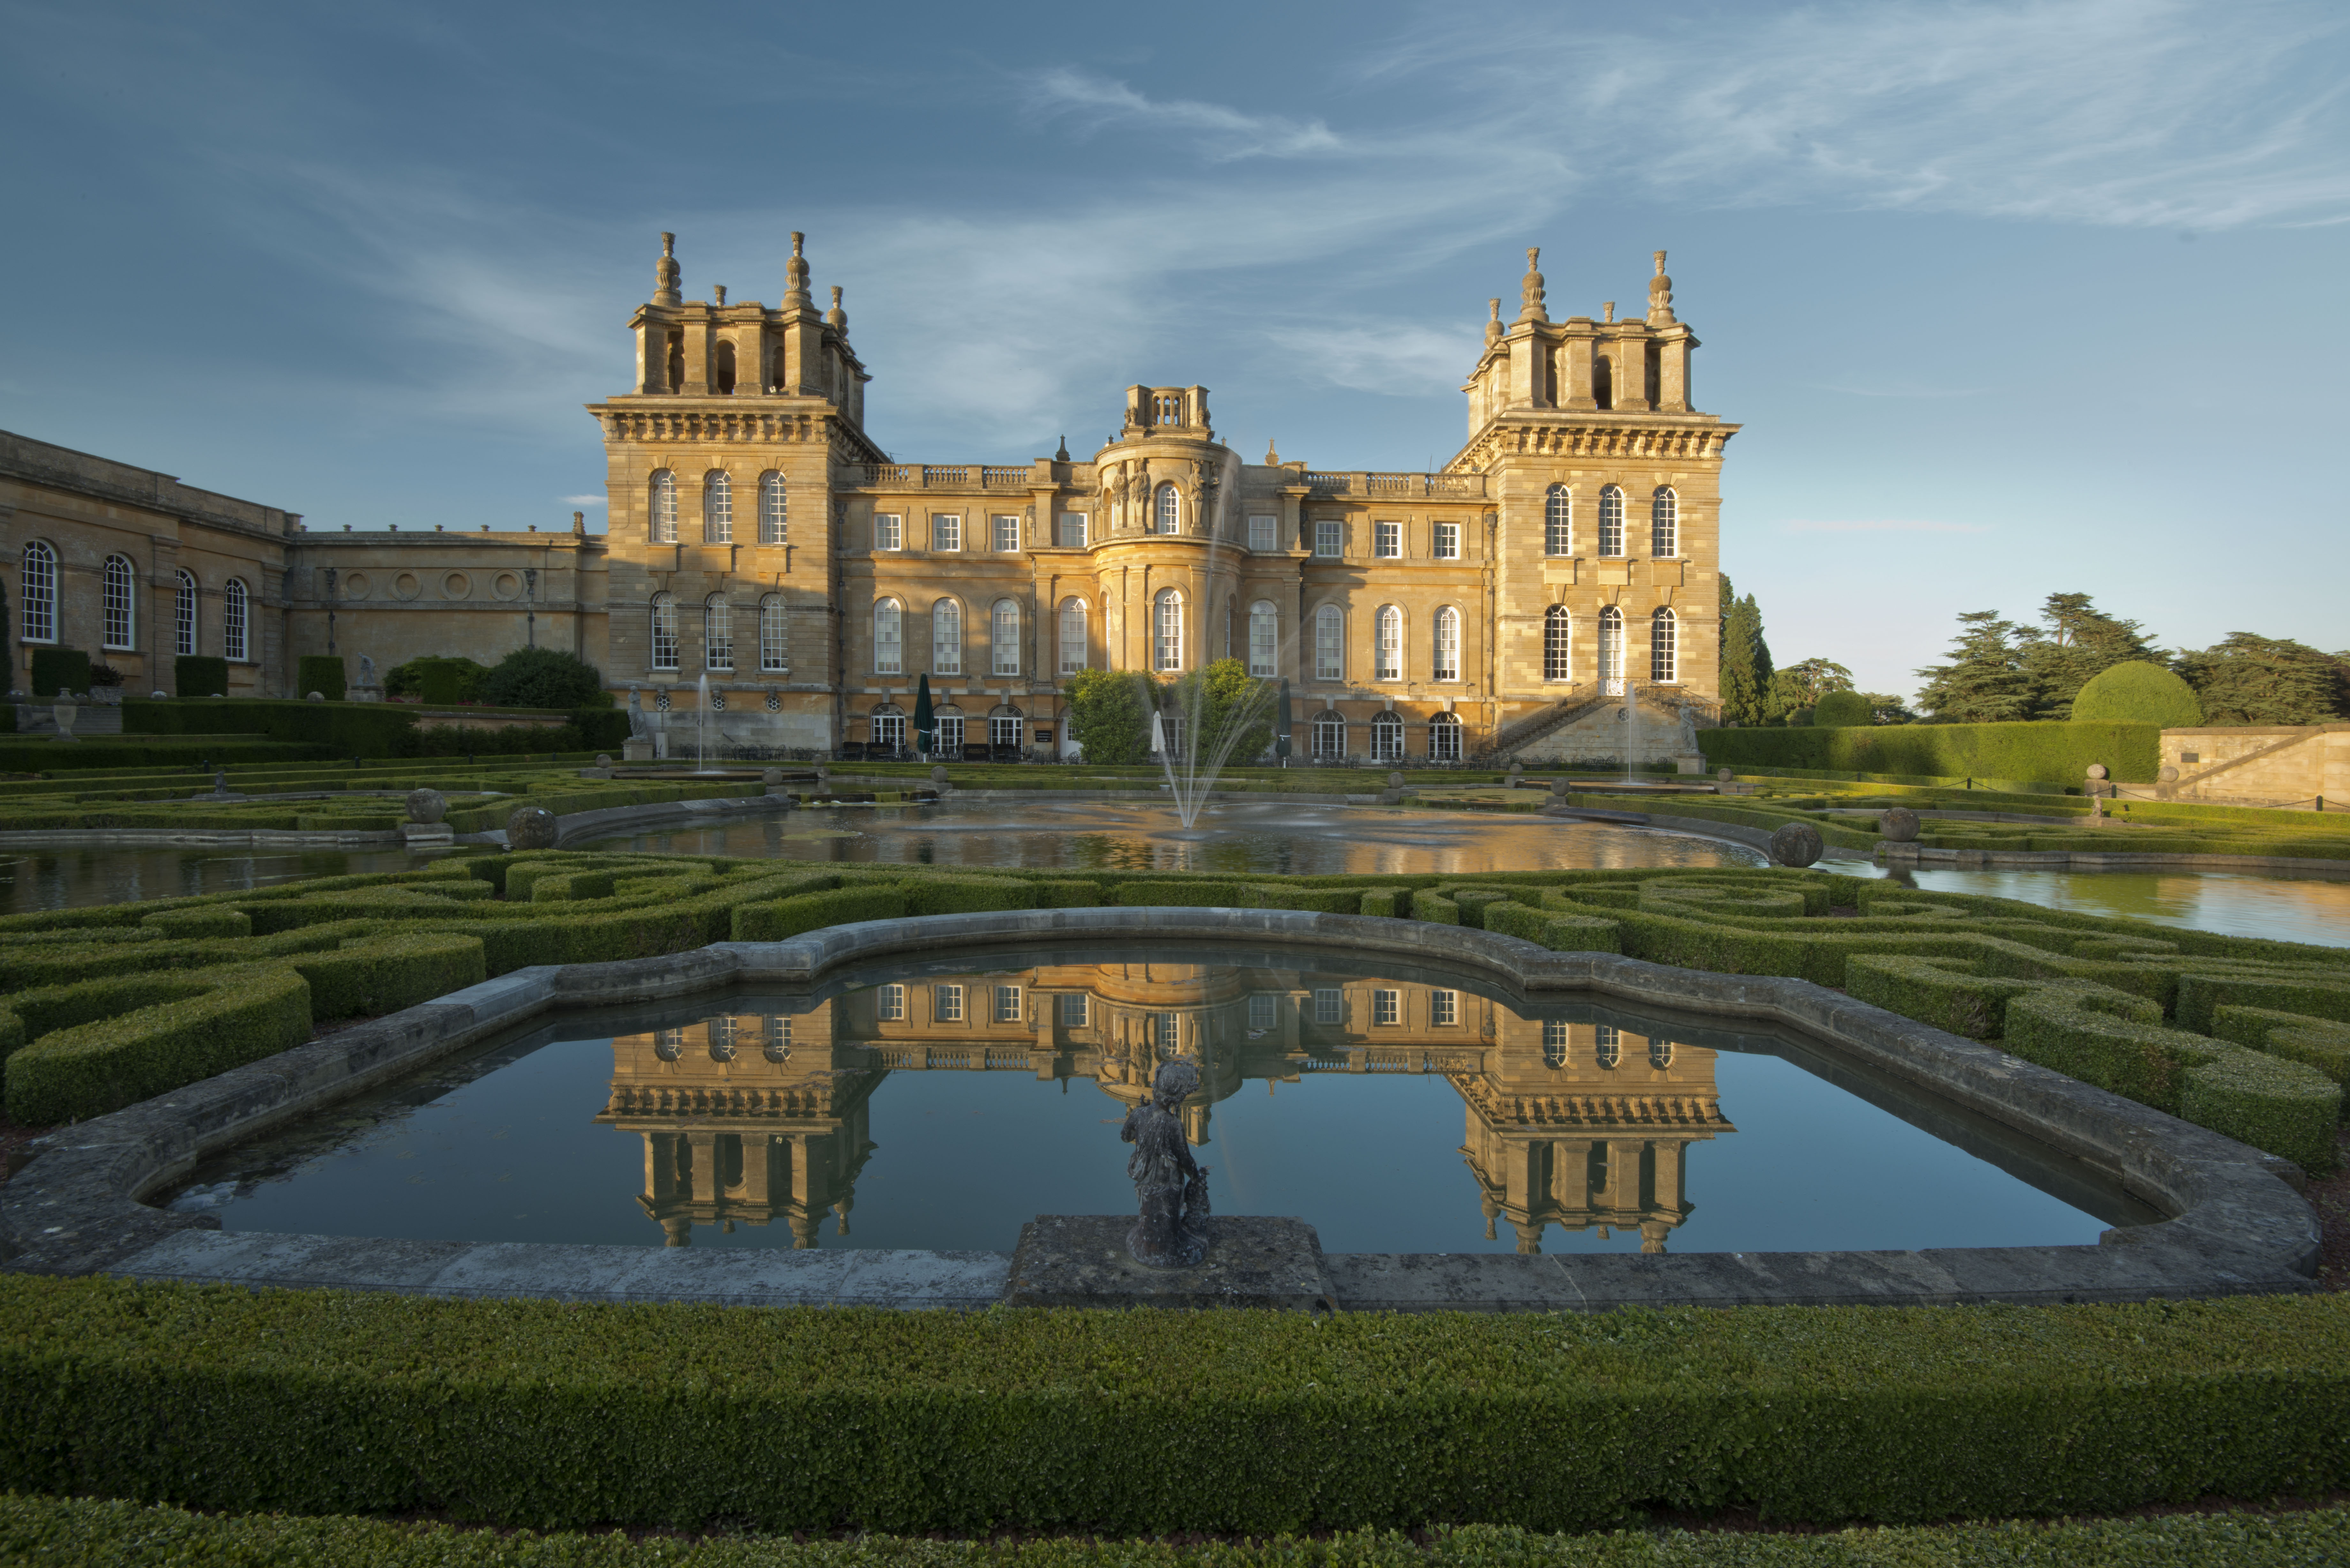 Preview: Blenheim Palace Literary Festival